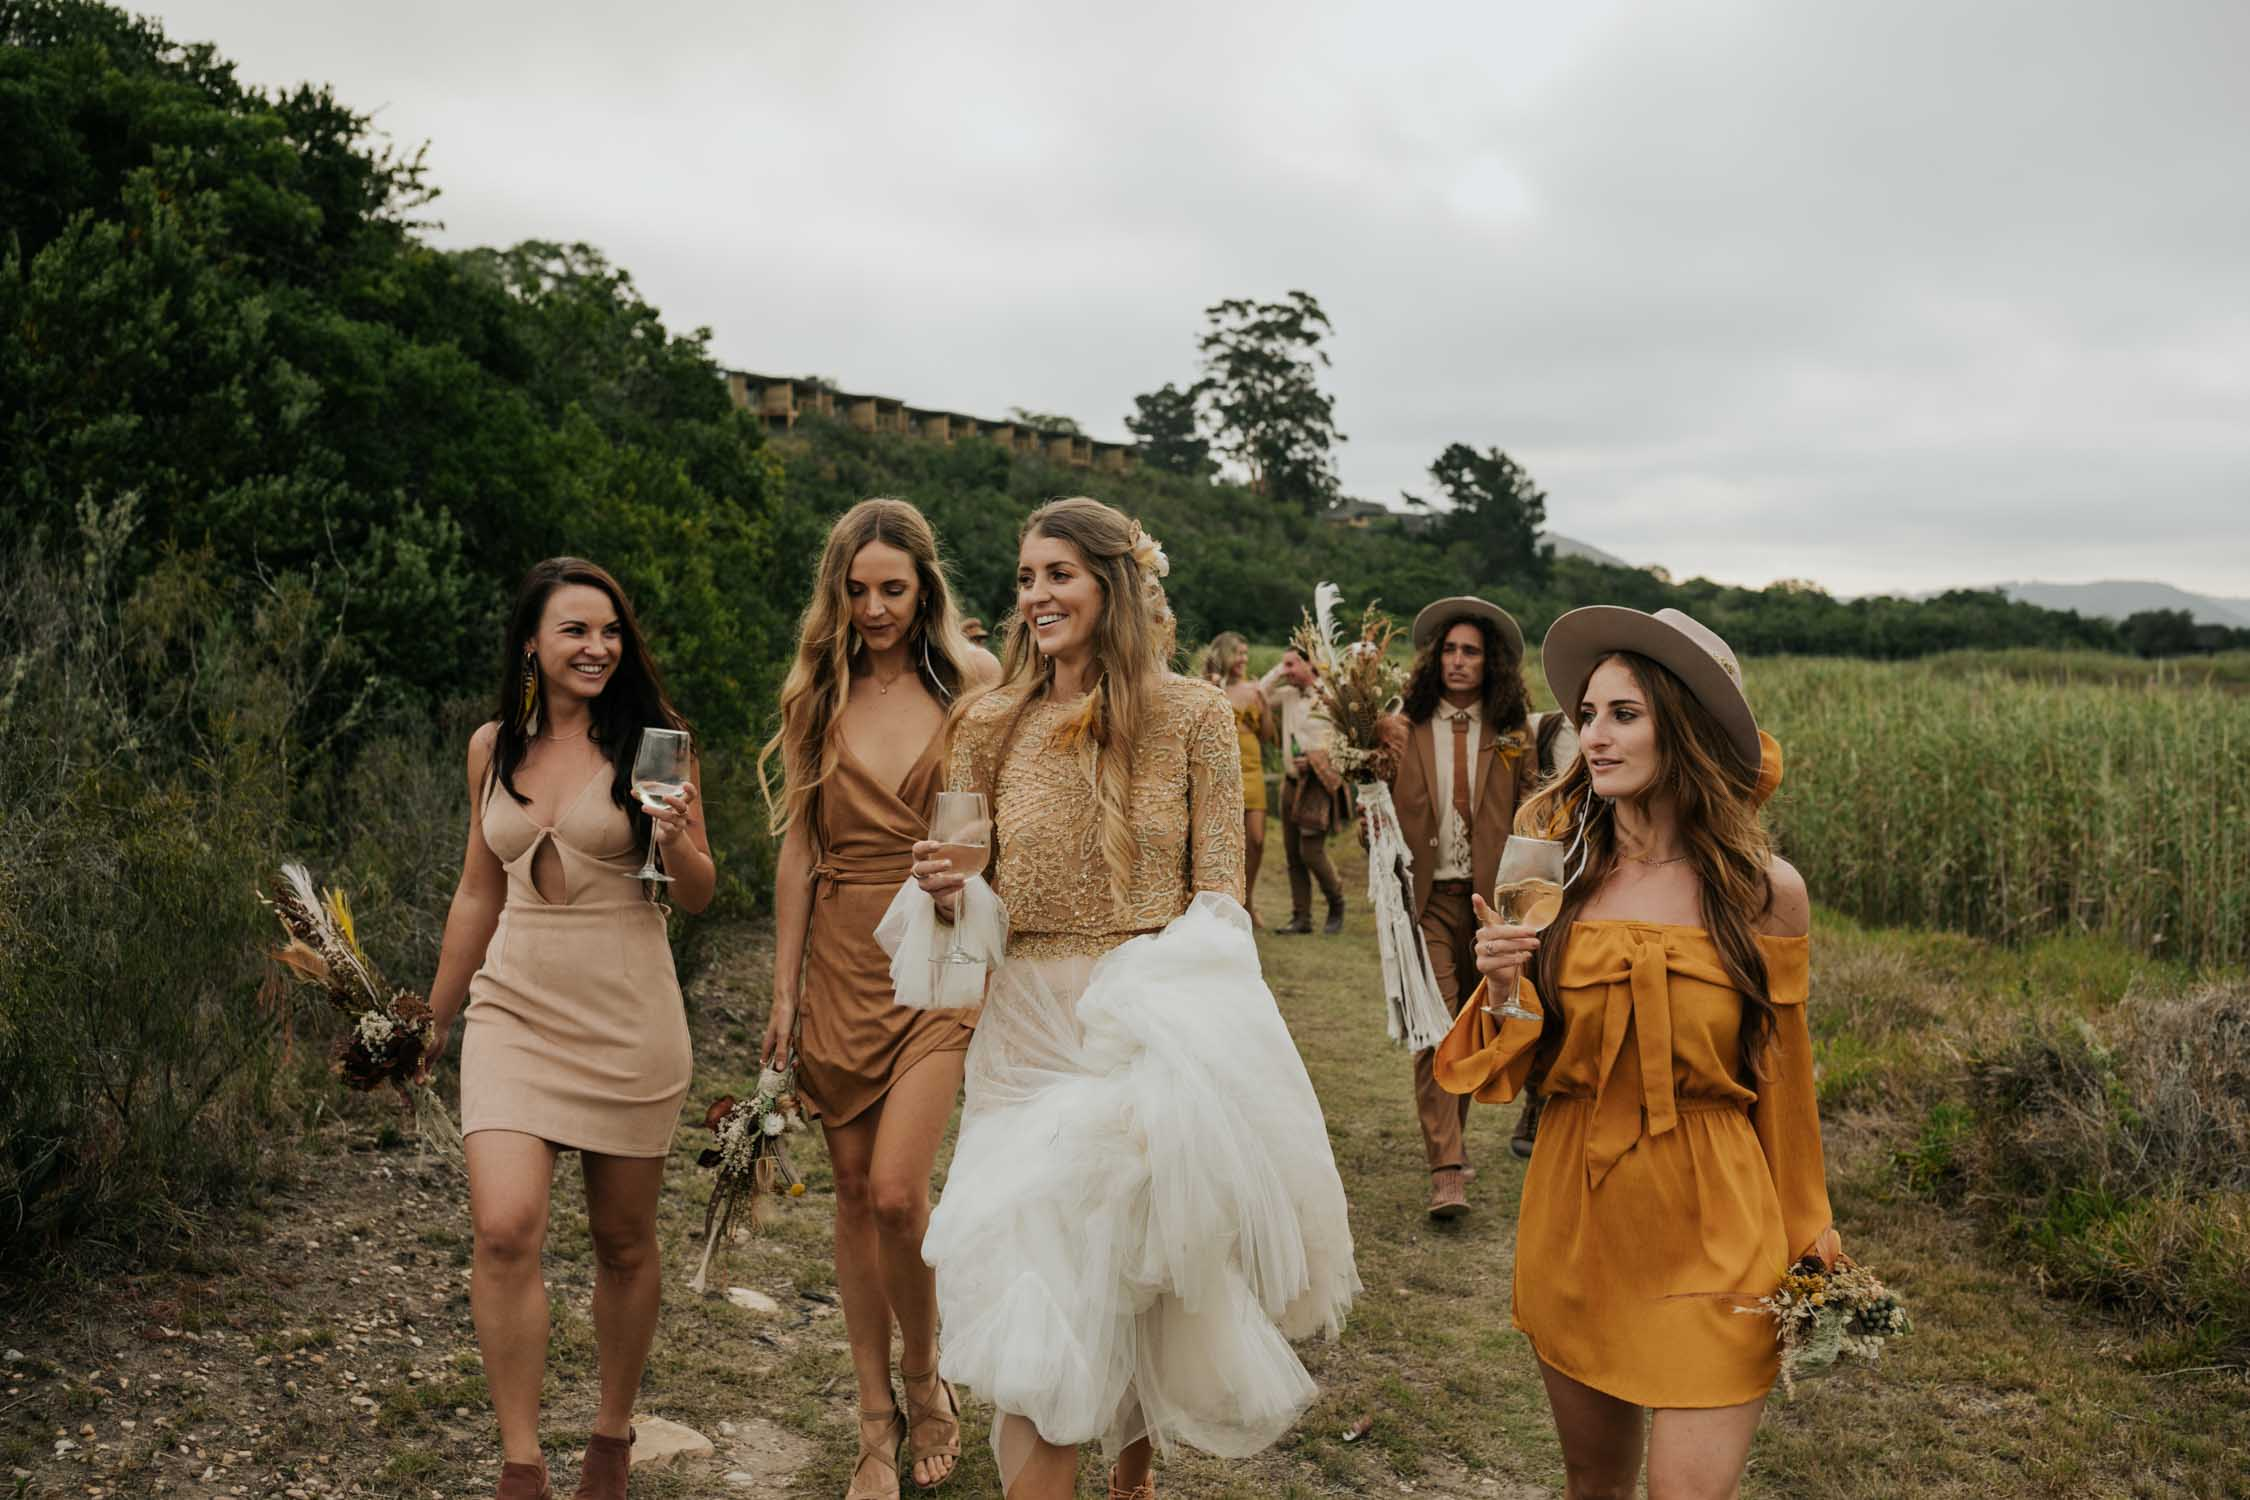 The ultimate boho gypsy bride tribe goals wearing gypsy sunshine and rust coloured dresses and hats